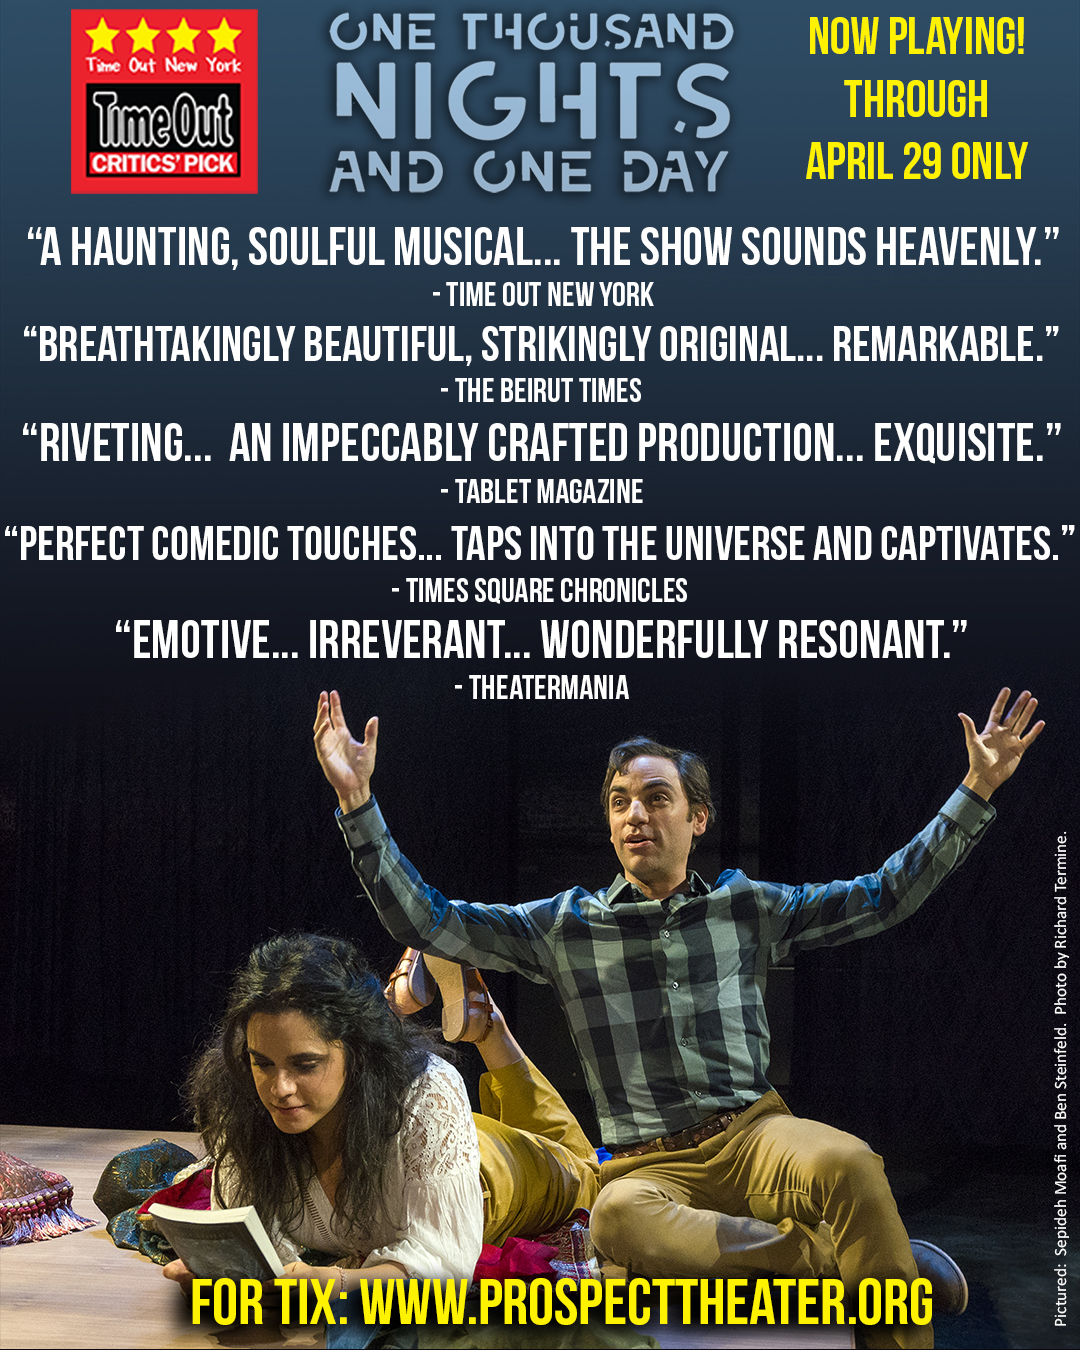 One Thousand Nights and One Day is a critics pick ~